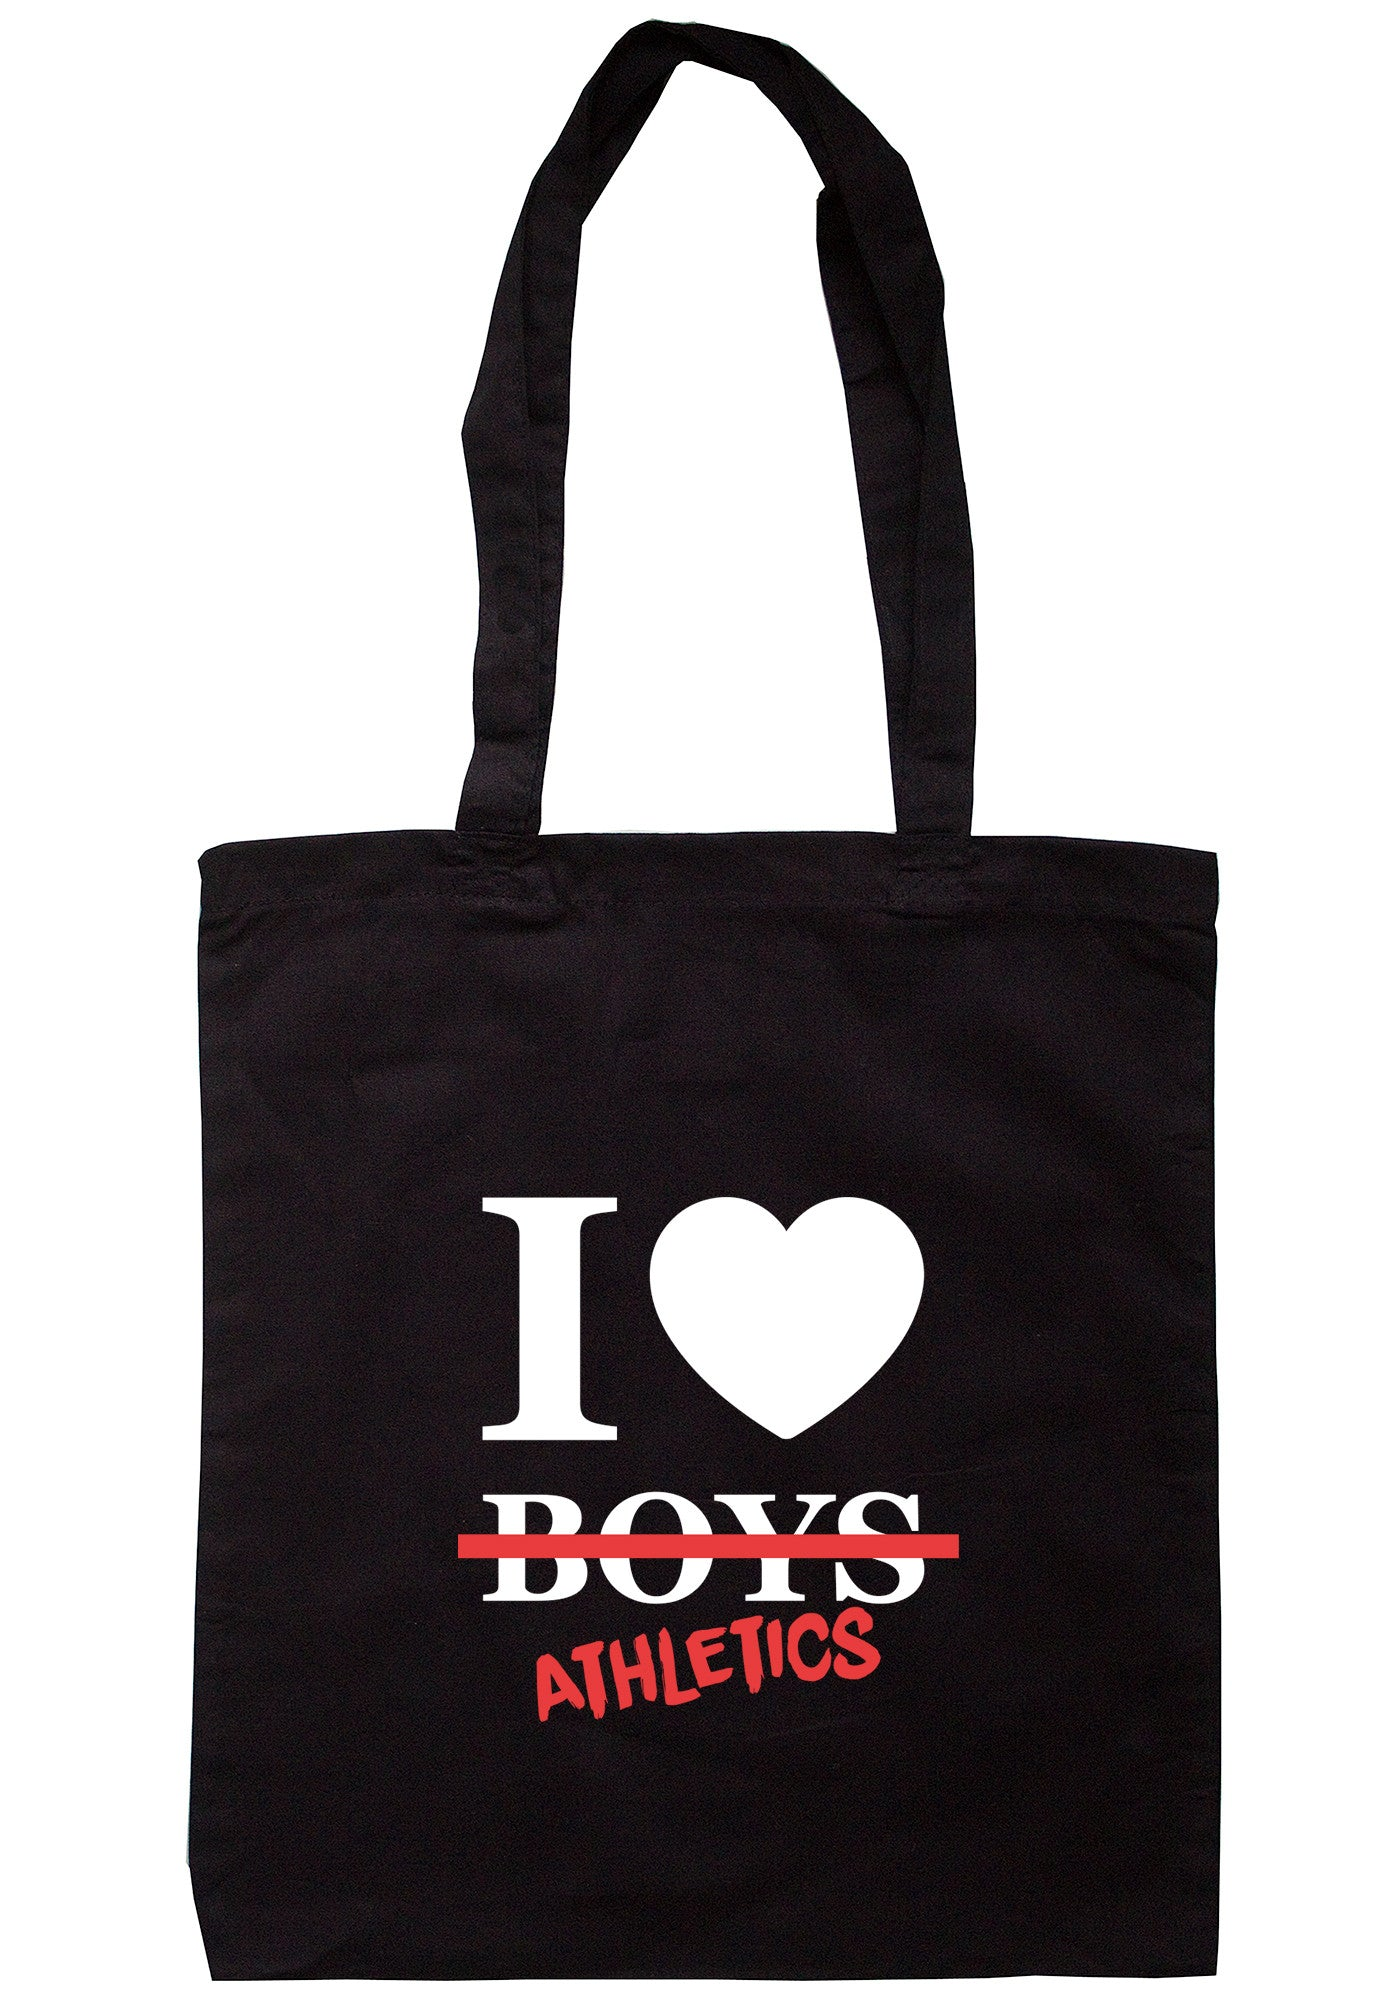 I Love Athletics Not Boys Tote Bag TB0423 - Illustrated Identity Ltd.